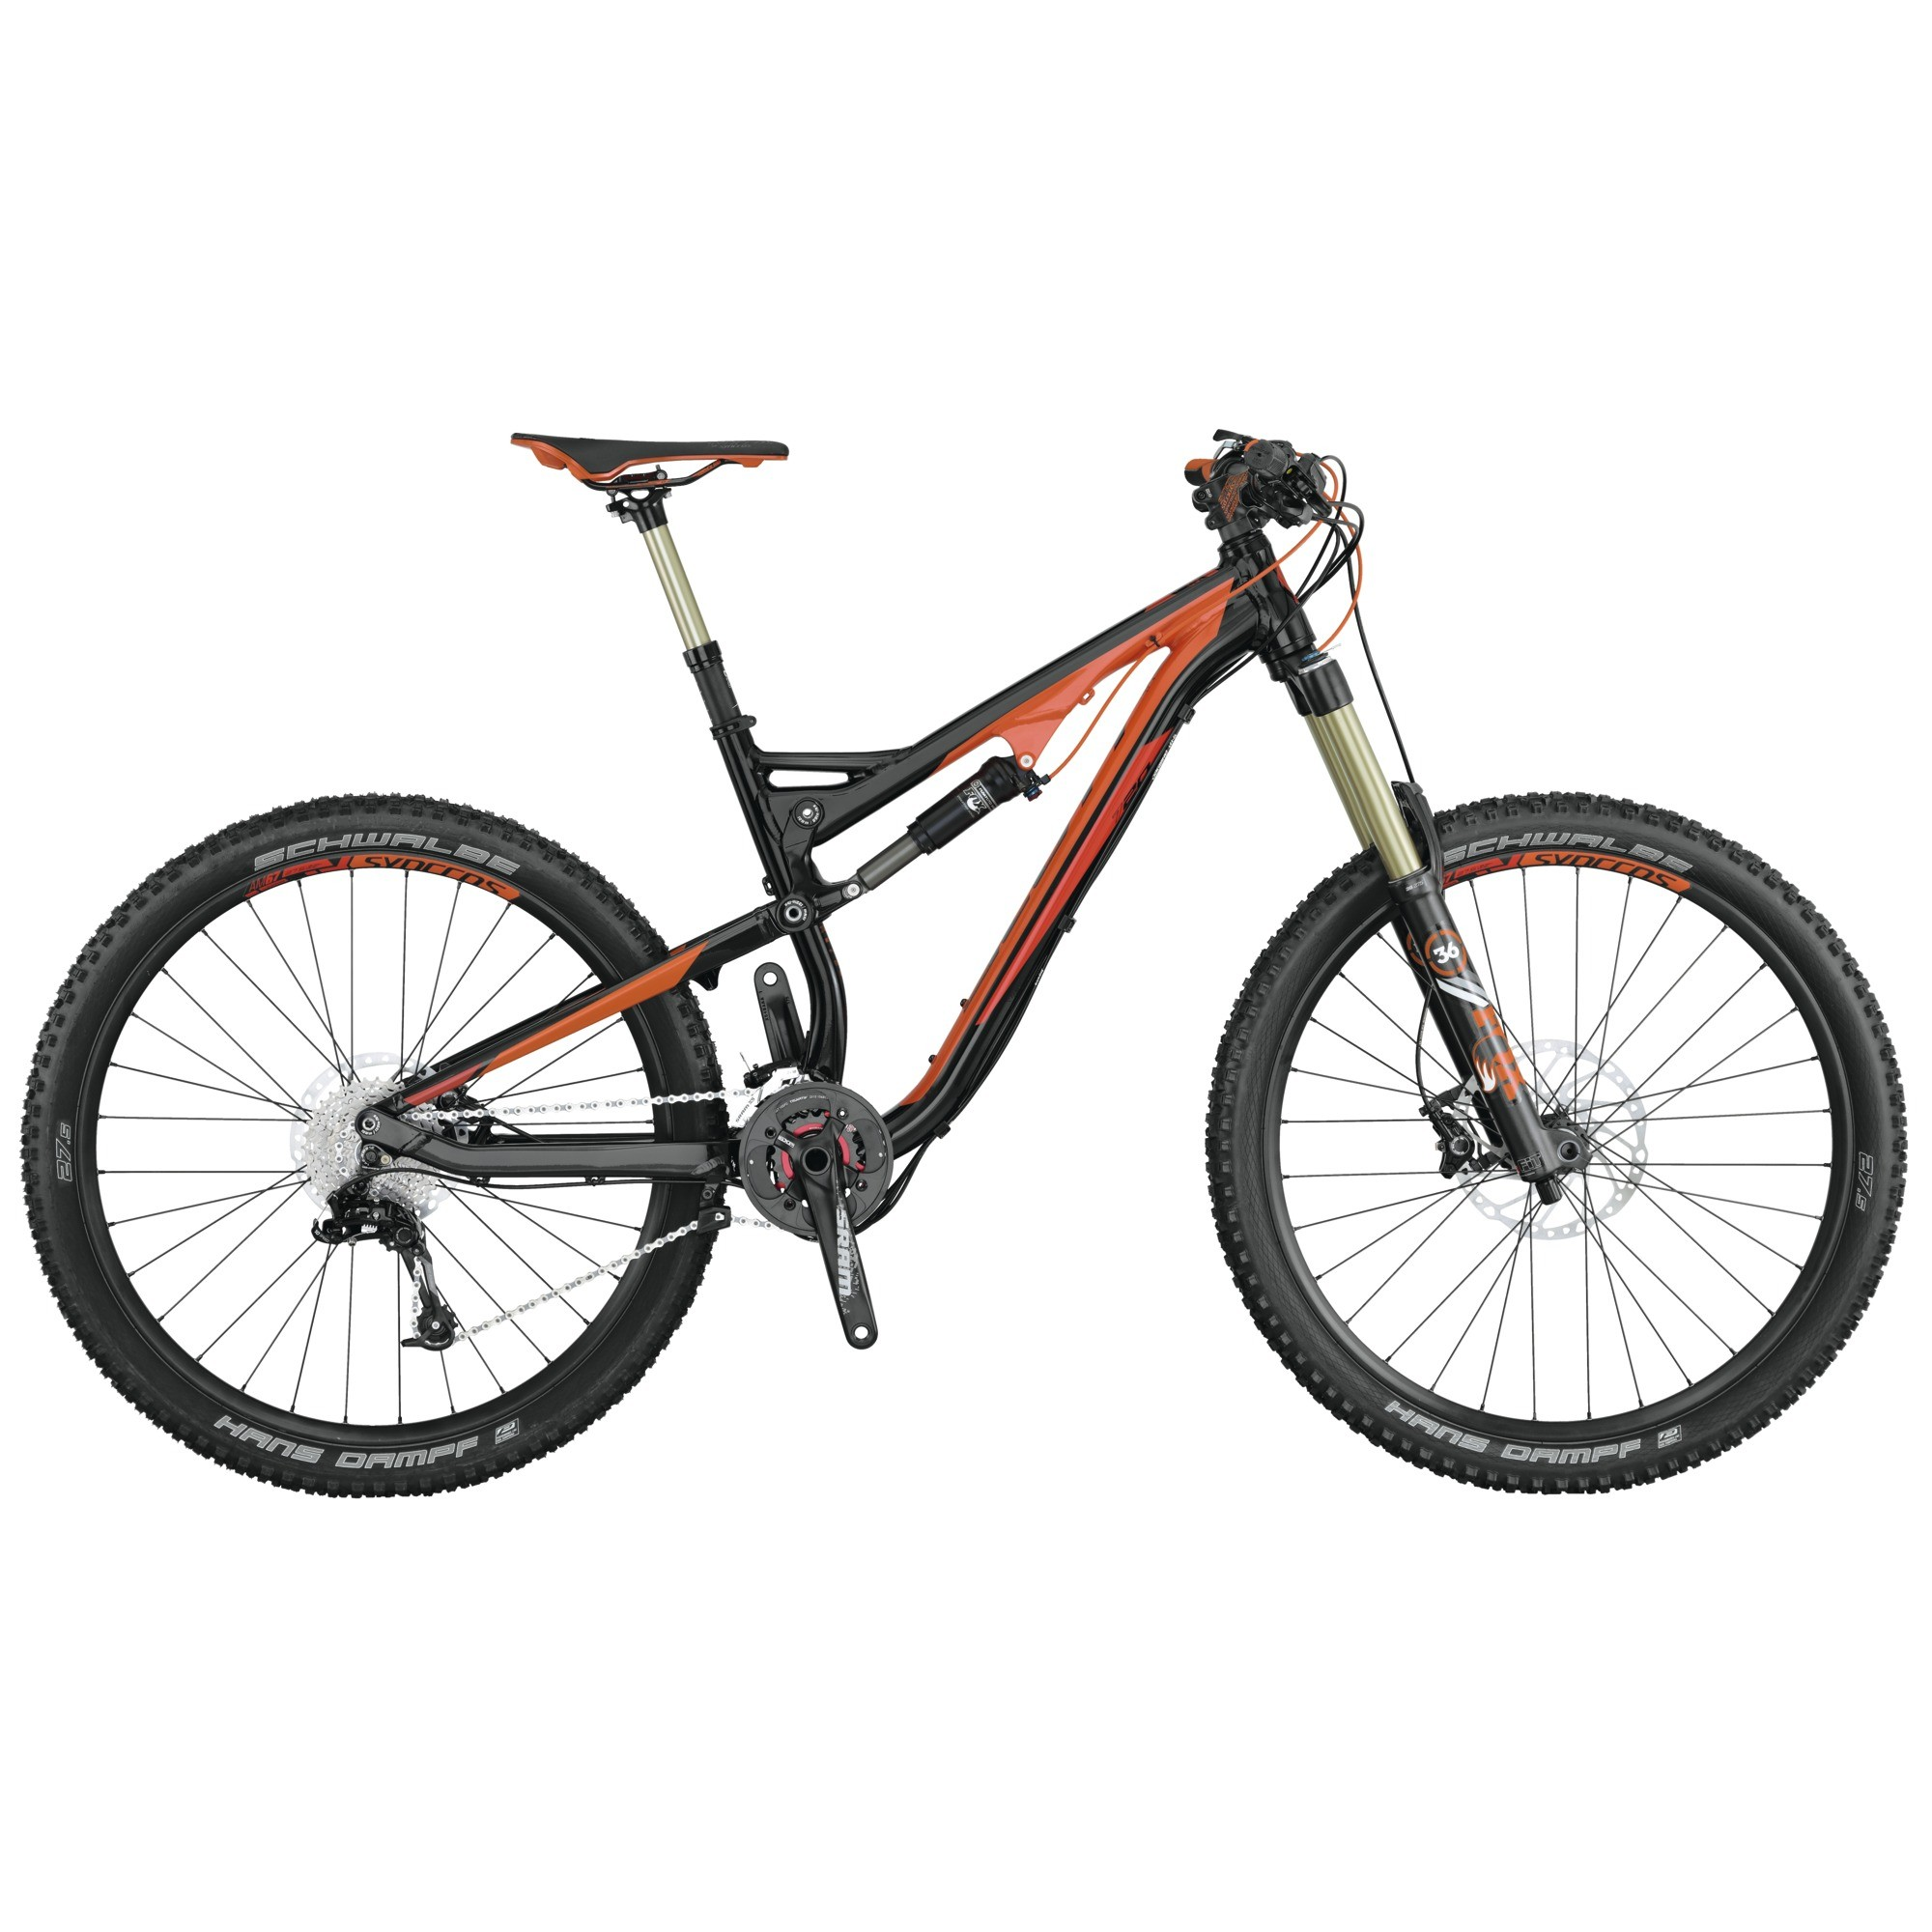 Scott Spark 940 2015 29er Mountain Bike as well Safety furthermore 50 Inch Deck Spindle And Blade Assembly also 8389m Cadillac Cts Does 2007 Cts Cadillac Blows Starter Fuse furthermore 21736113 Stromlaufplan Vectra B Ab Mj 98 Ab 9 1998. on traction control